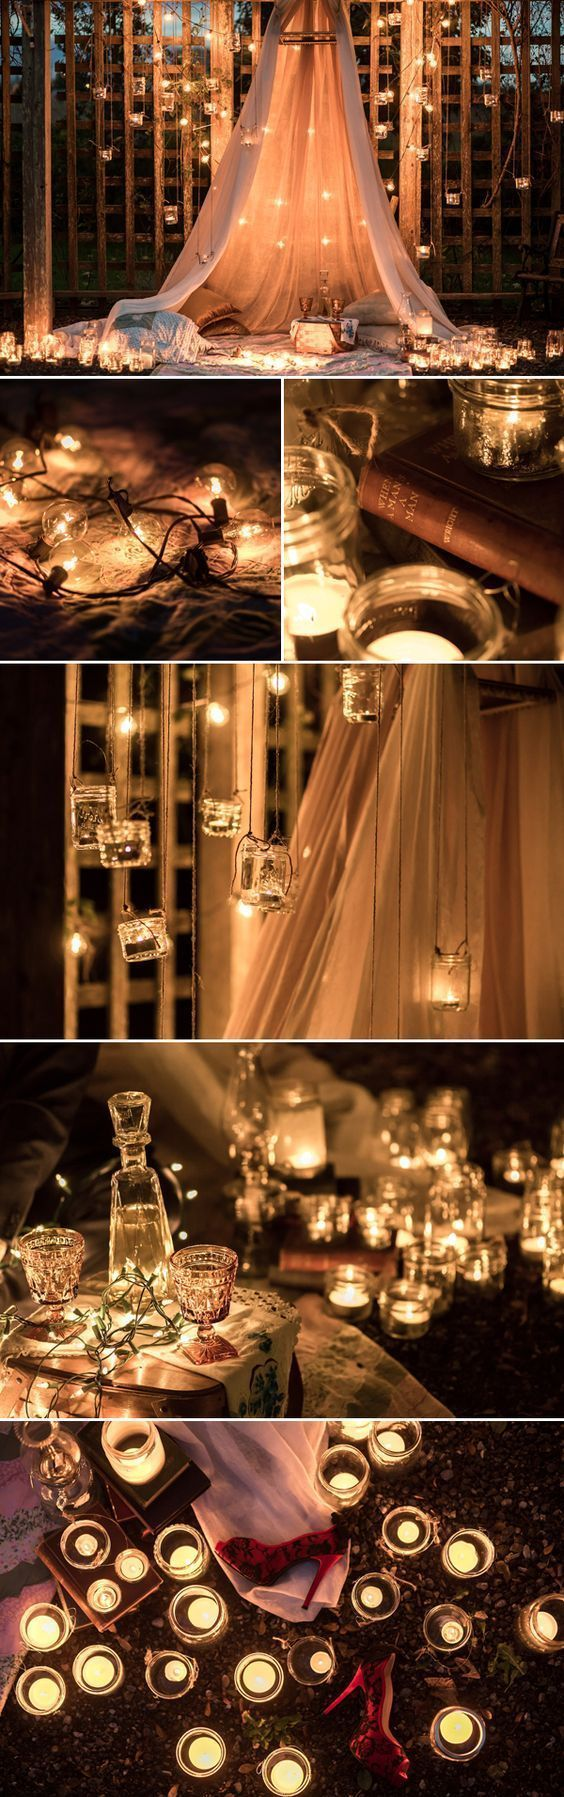 Magical Romantic Candle Light Engagement Session from Kunioo  Praise Wedding Magical Romantic Candle Light Engagement Session from Kunioo  Praise Wedding